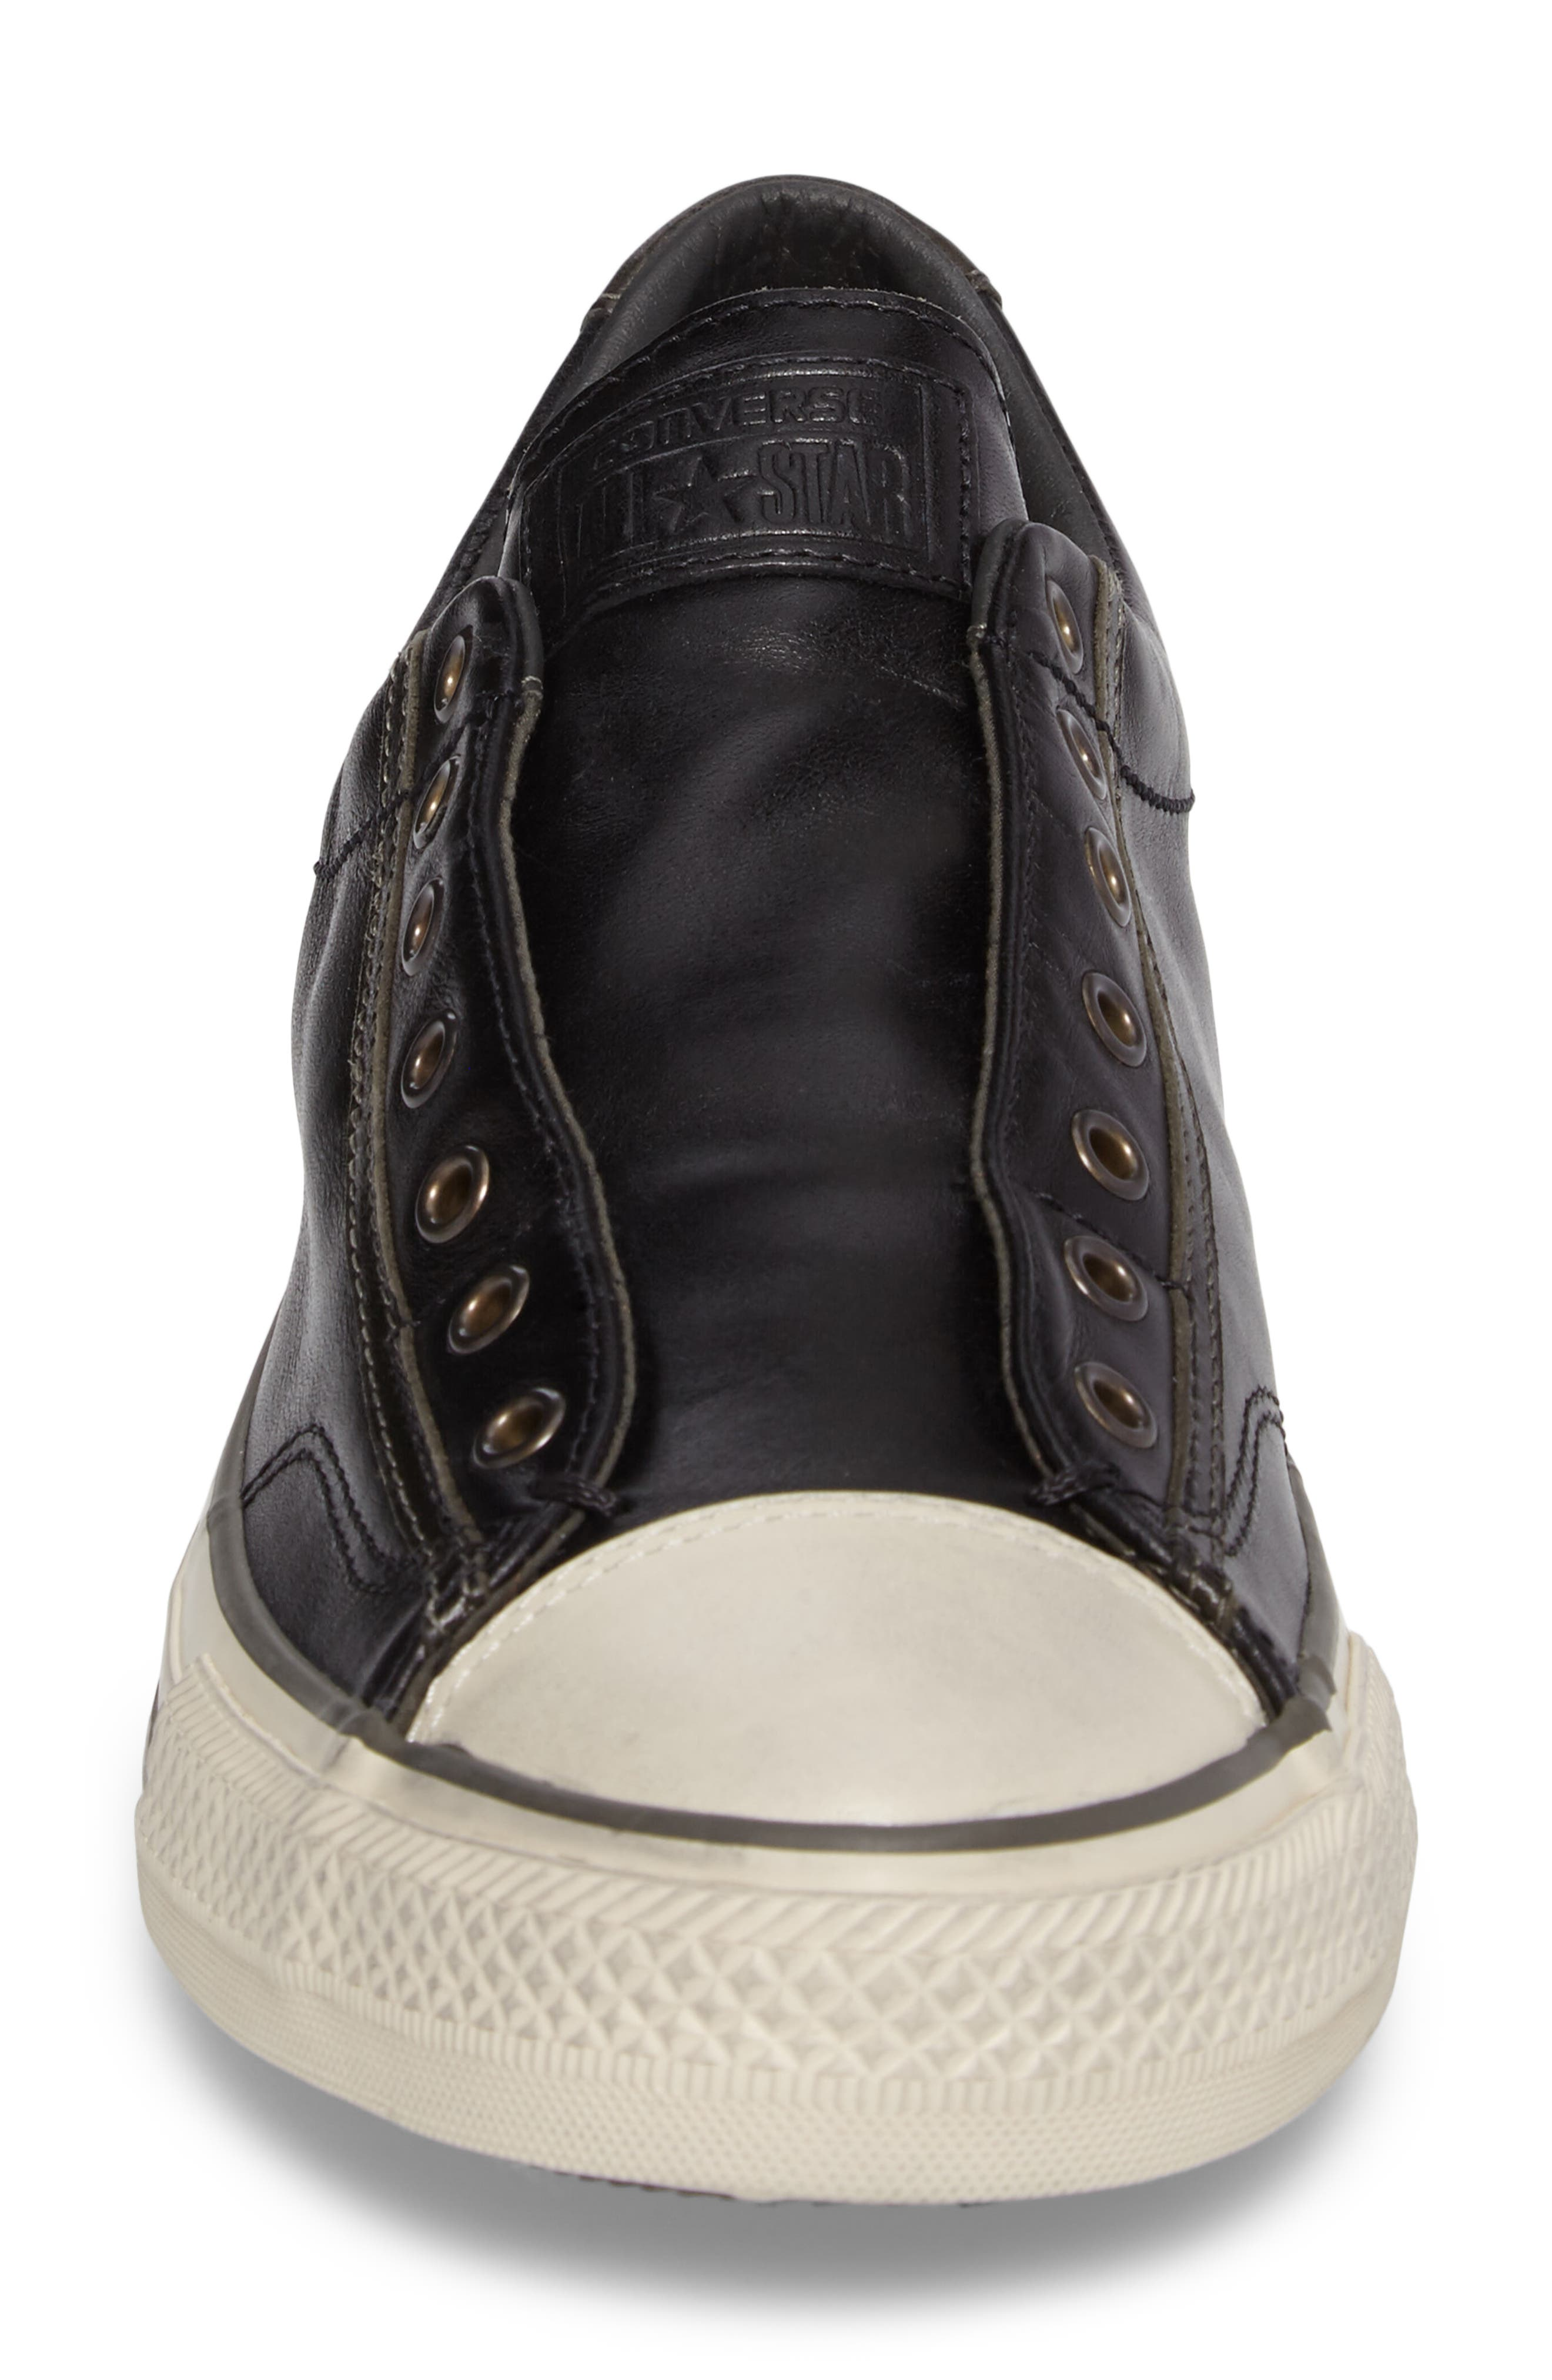 by John Varvatos Sneaker,                             Alternate thumbnail 4, color,                             001